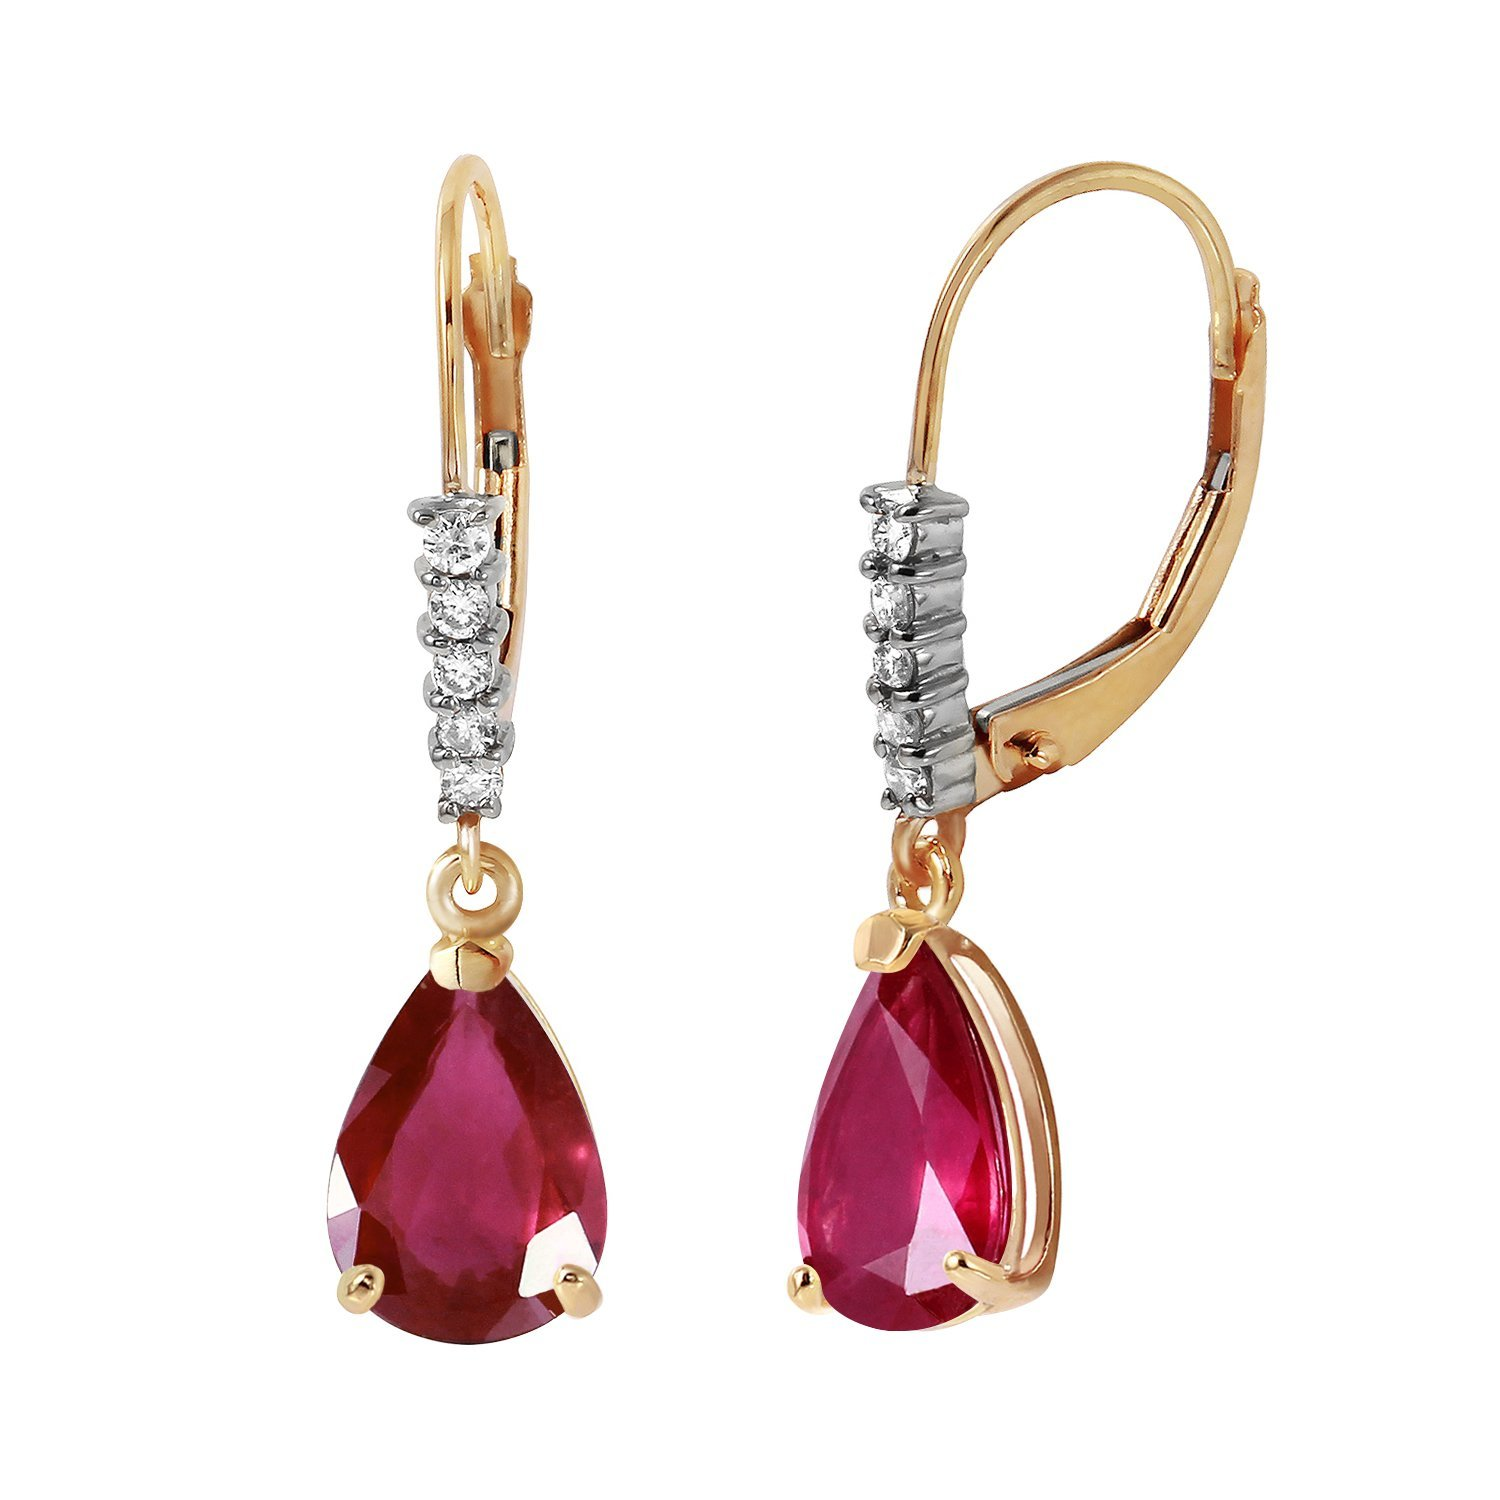 3.15 Carat 14k Solid Gold Leverback Earrings with Natural Diamonds and Rubies